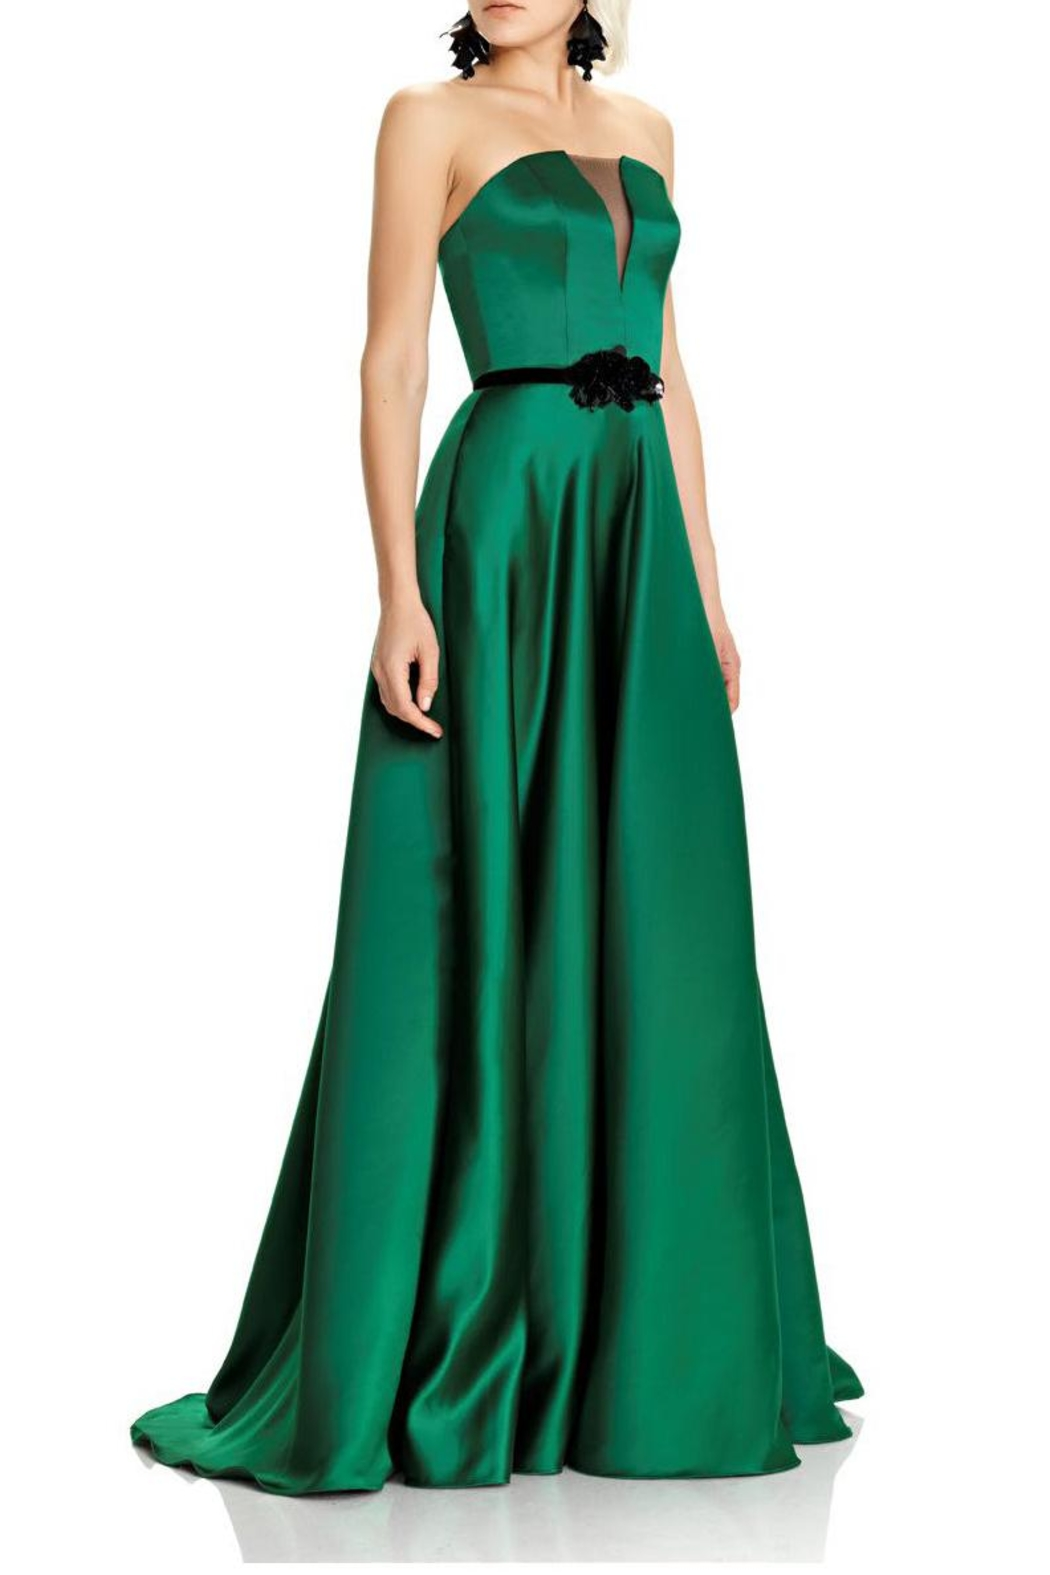 Theia Green Strapless Evening Gown - Main Image